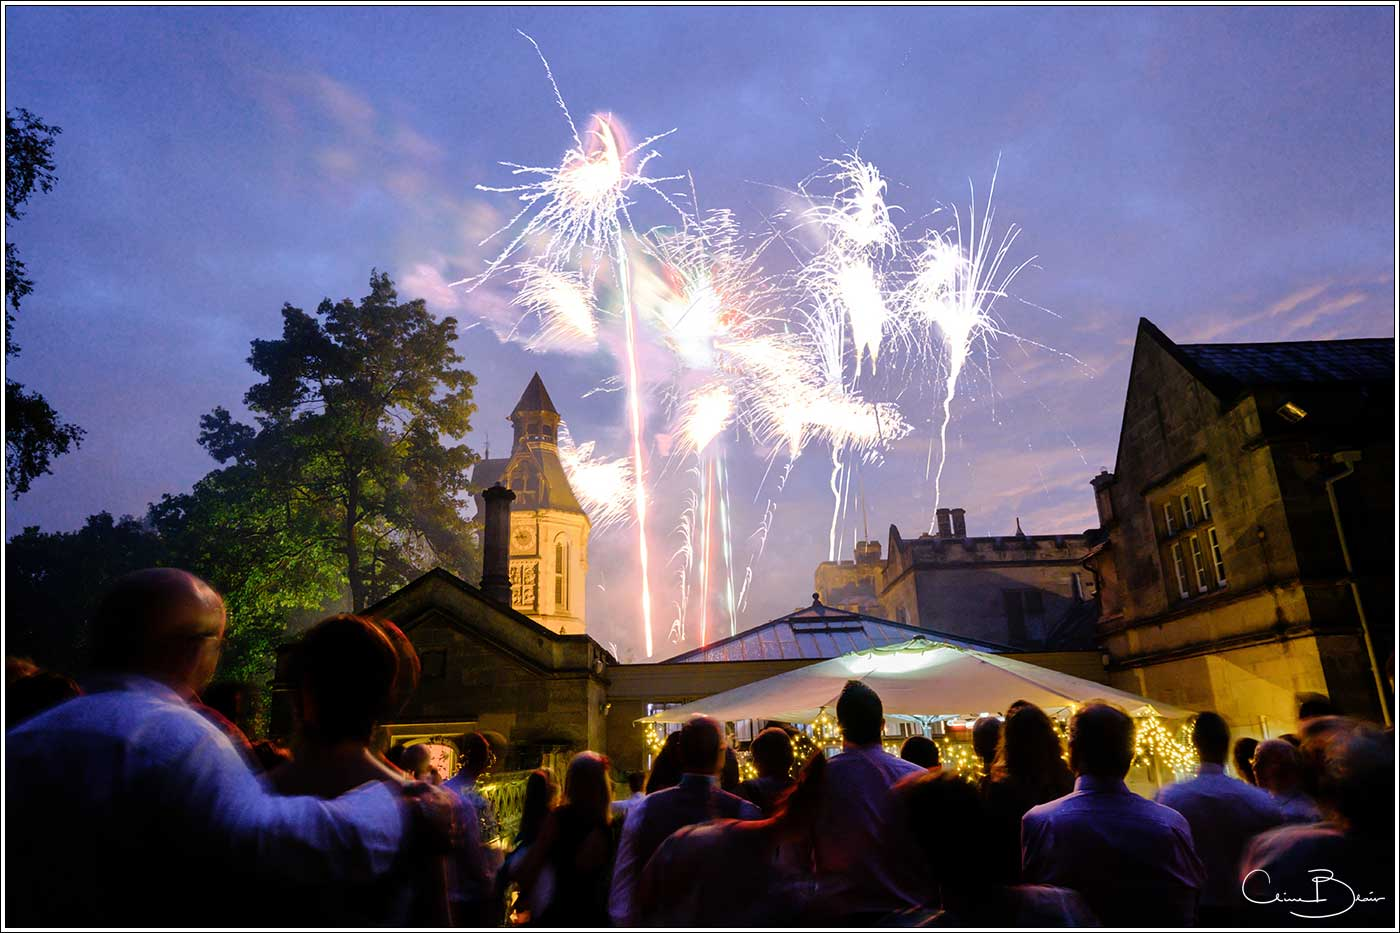 Fireworks-by Hampton manor wedding photographer Clive Blair Photography